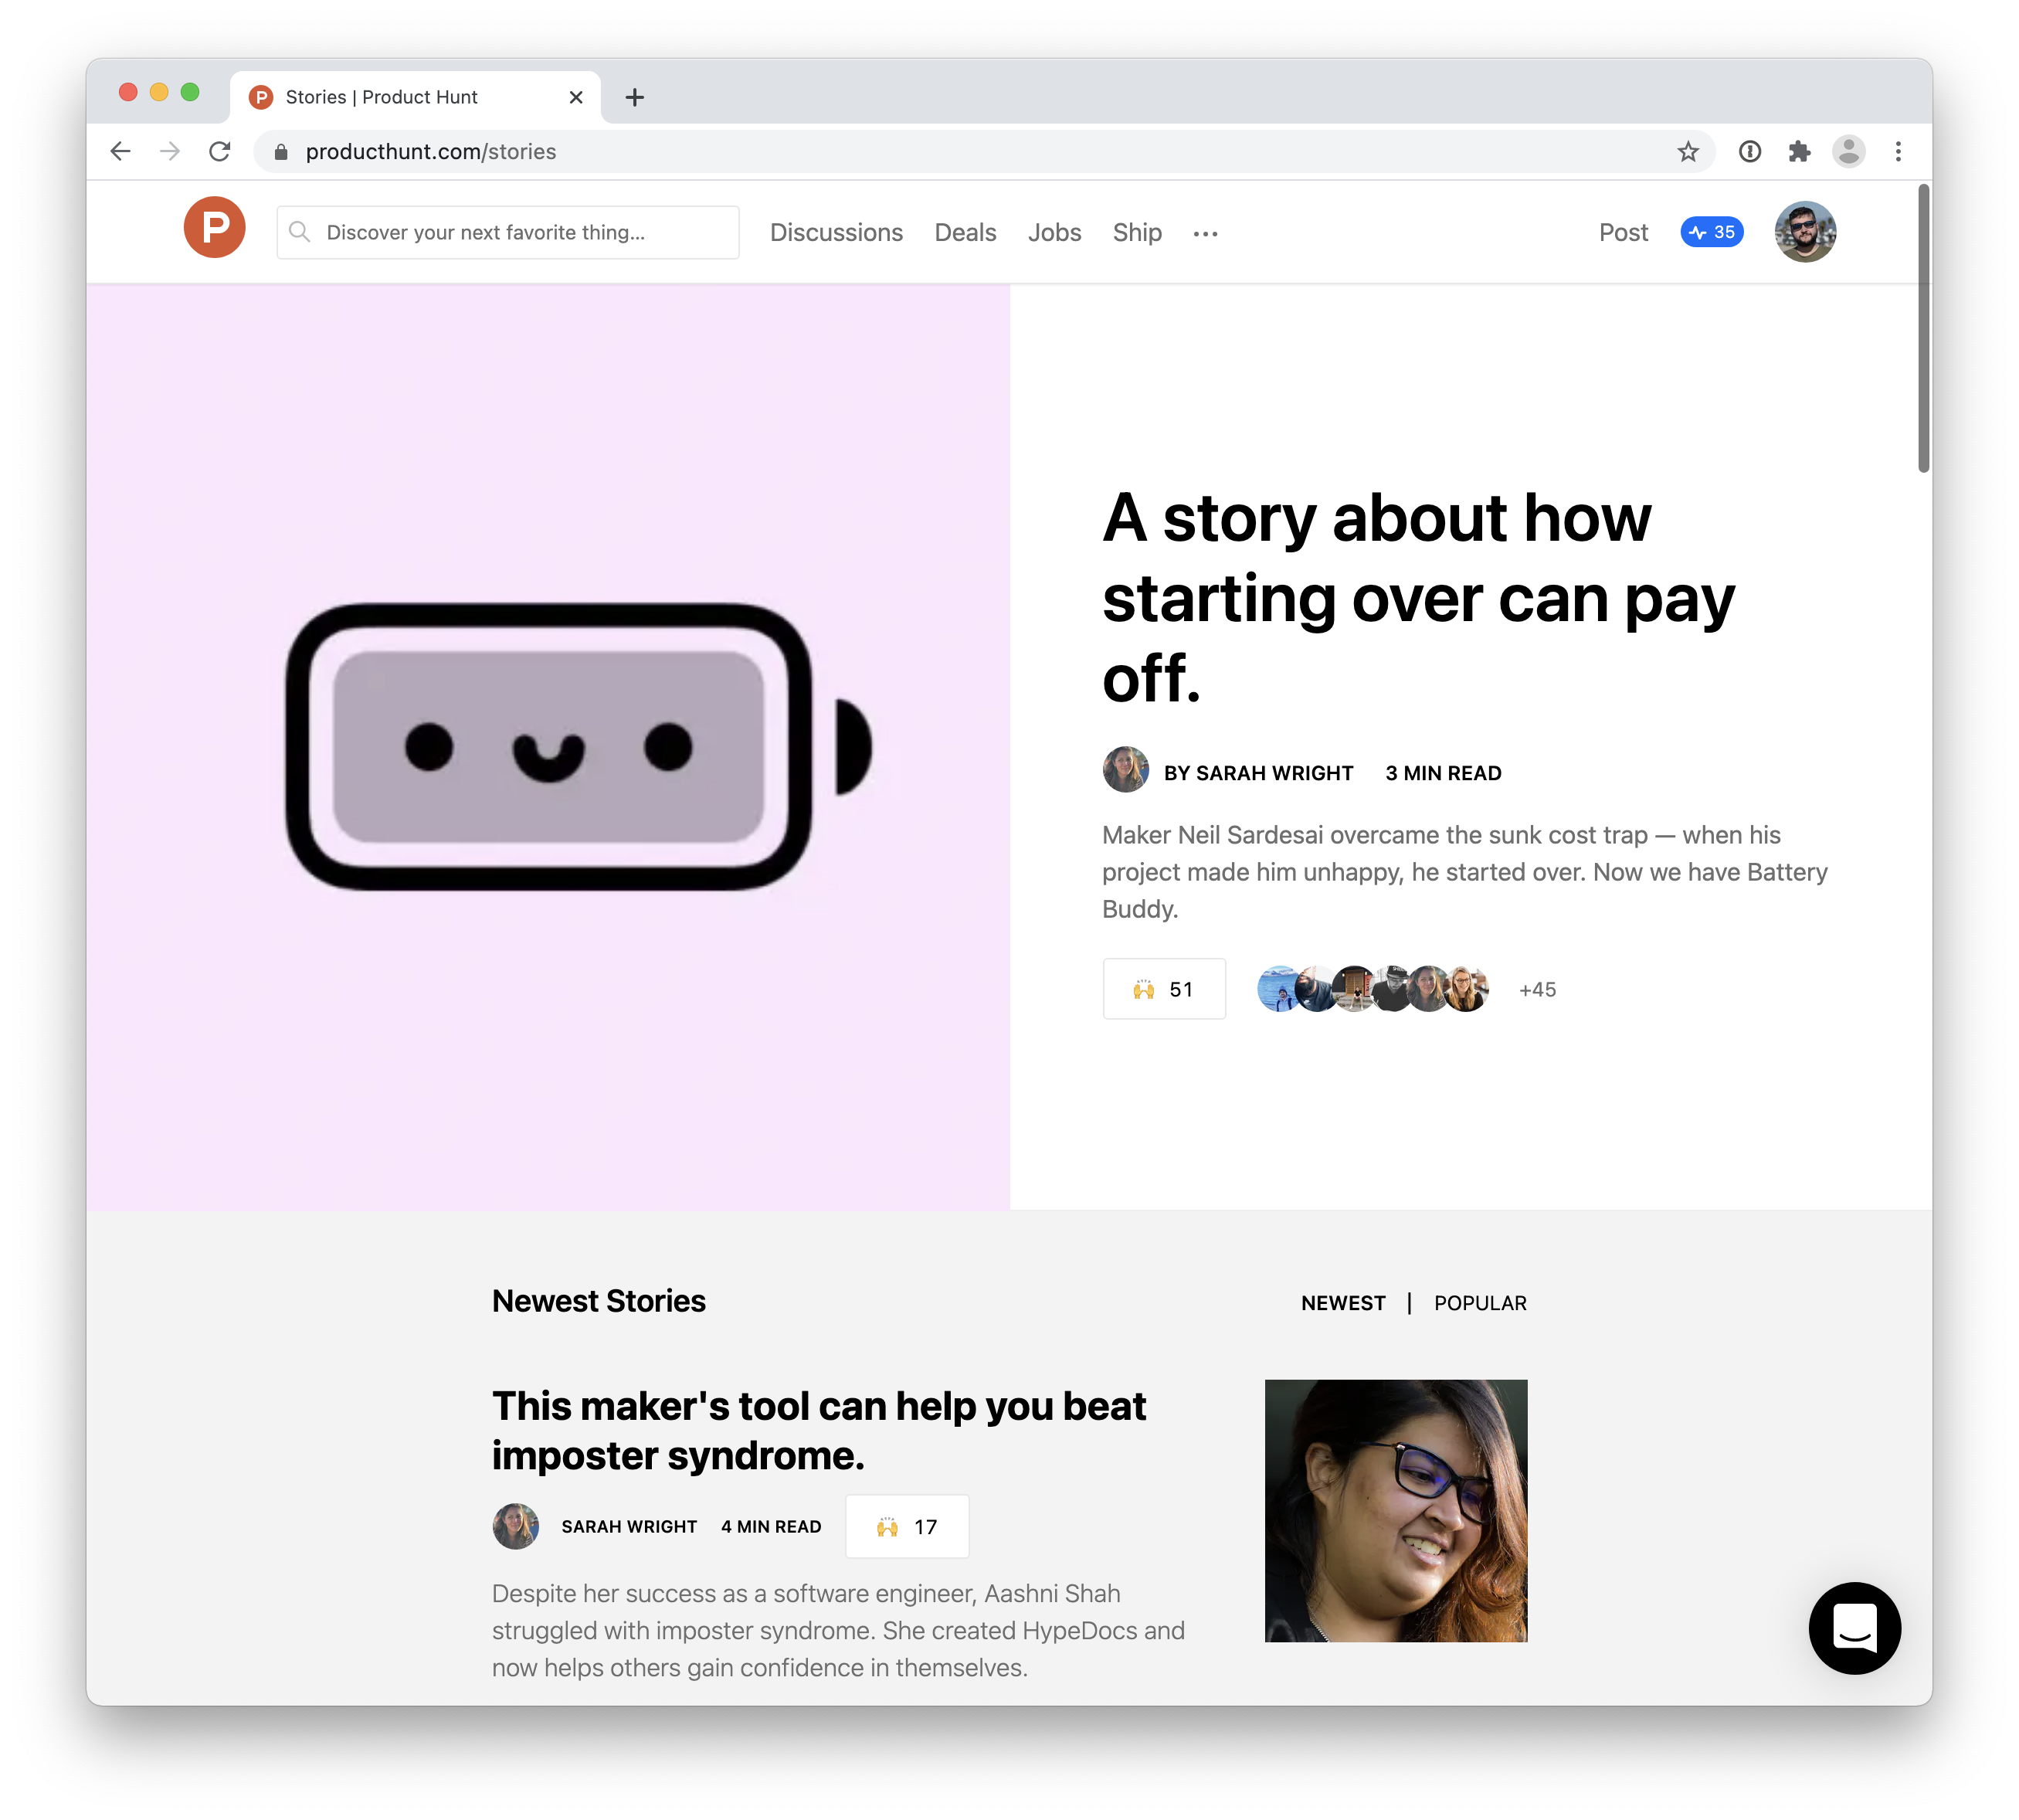 Product Hunt Stories